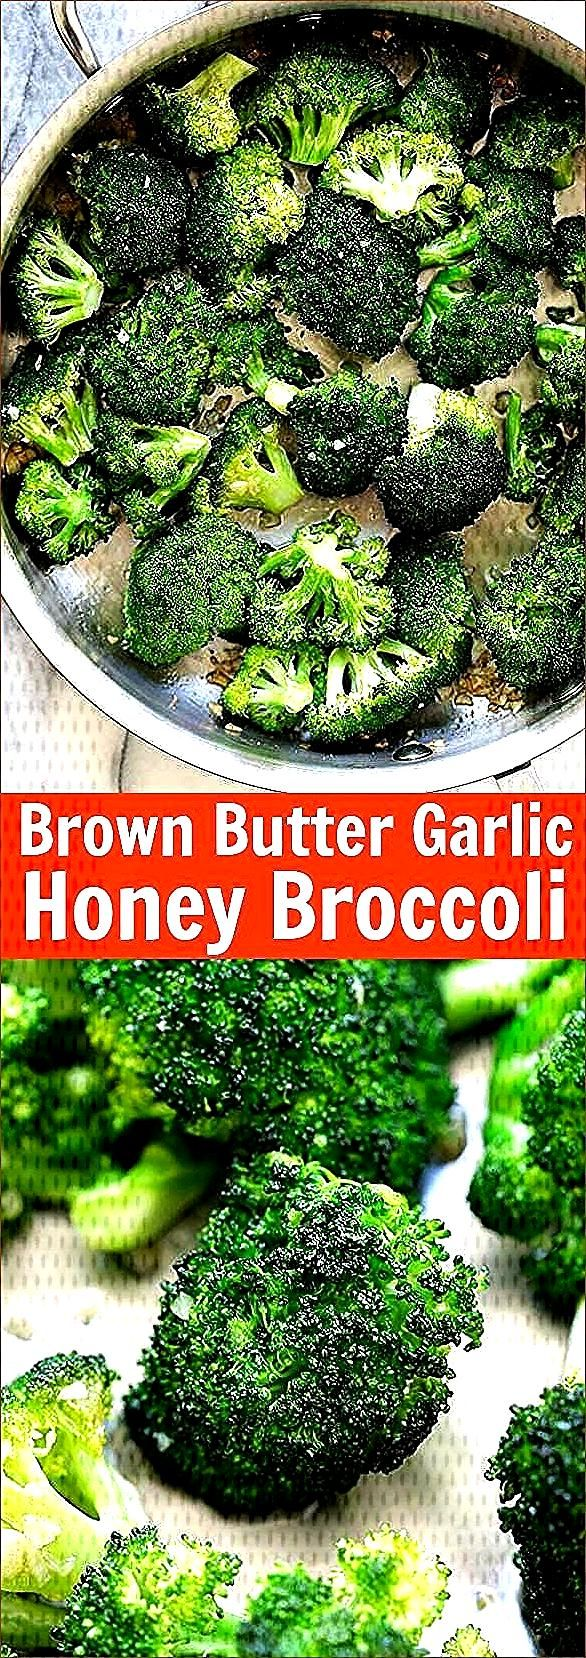 Brown Butter Garlic Honey Broccoli - Dress up easy roasted broccoli,